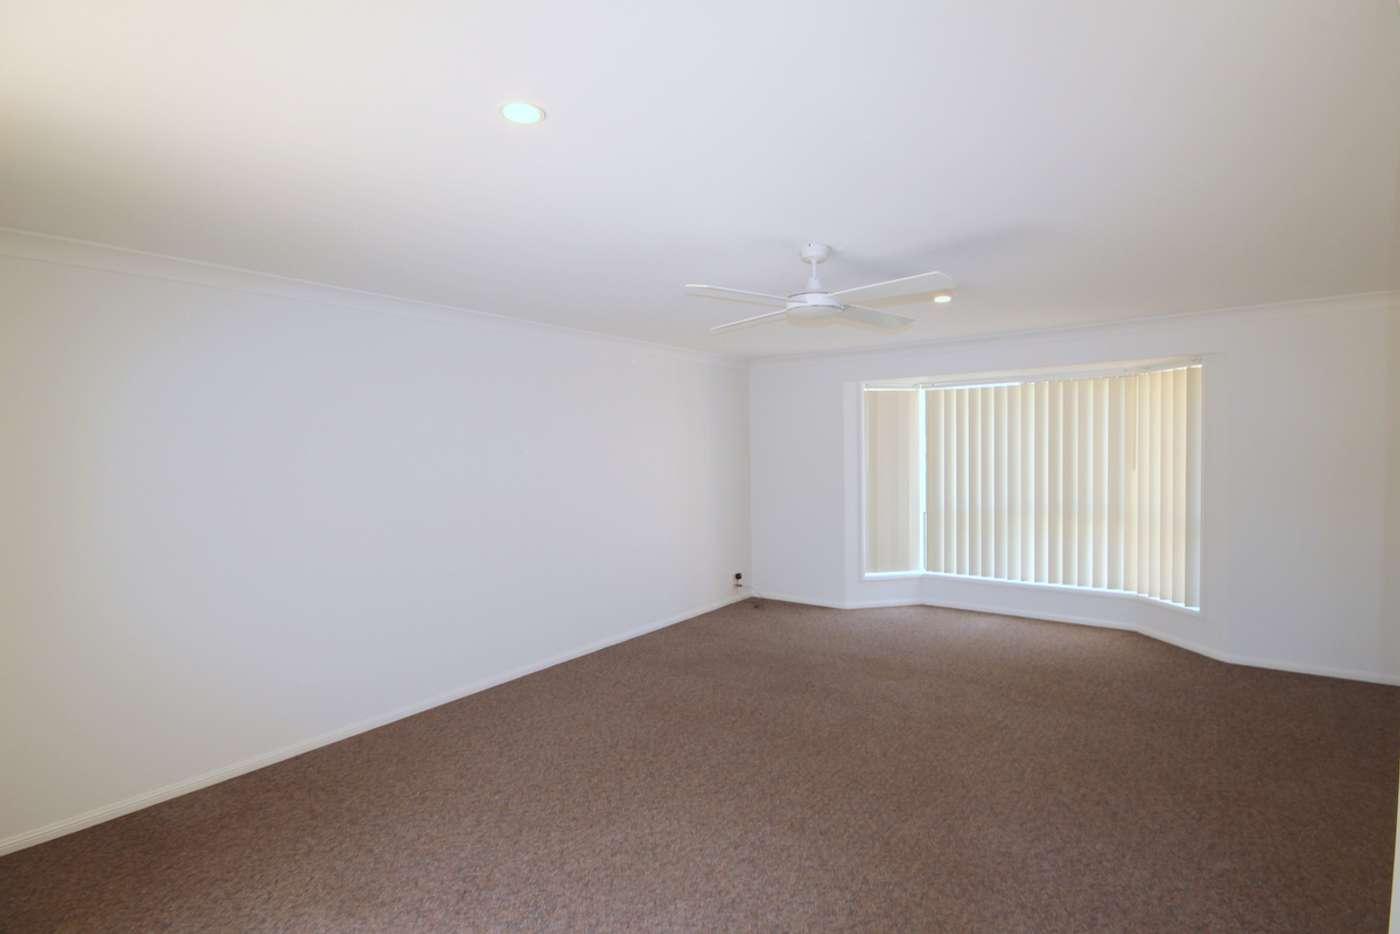 Sixth view of Homely house listing, 67 HICKEY WAY, Carrara QLD 4211